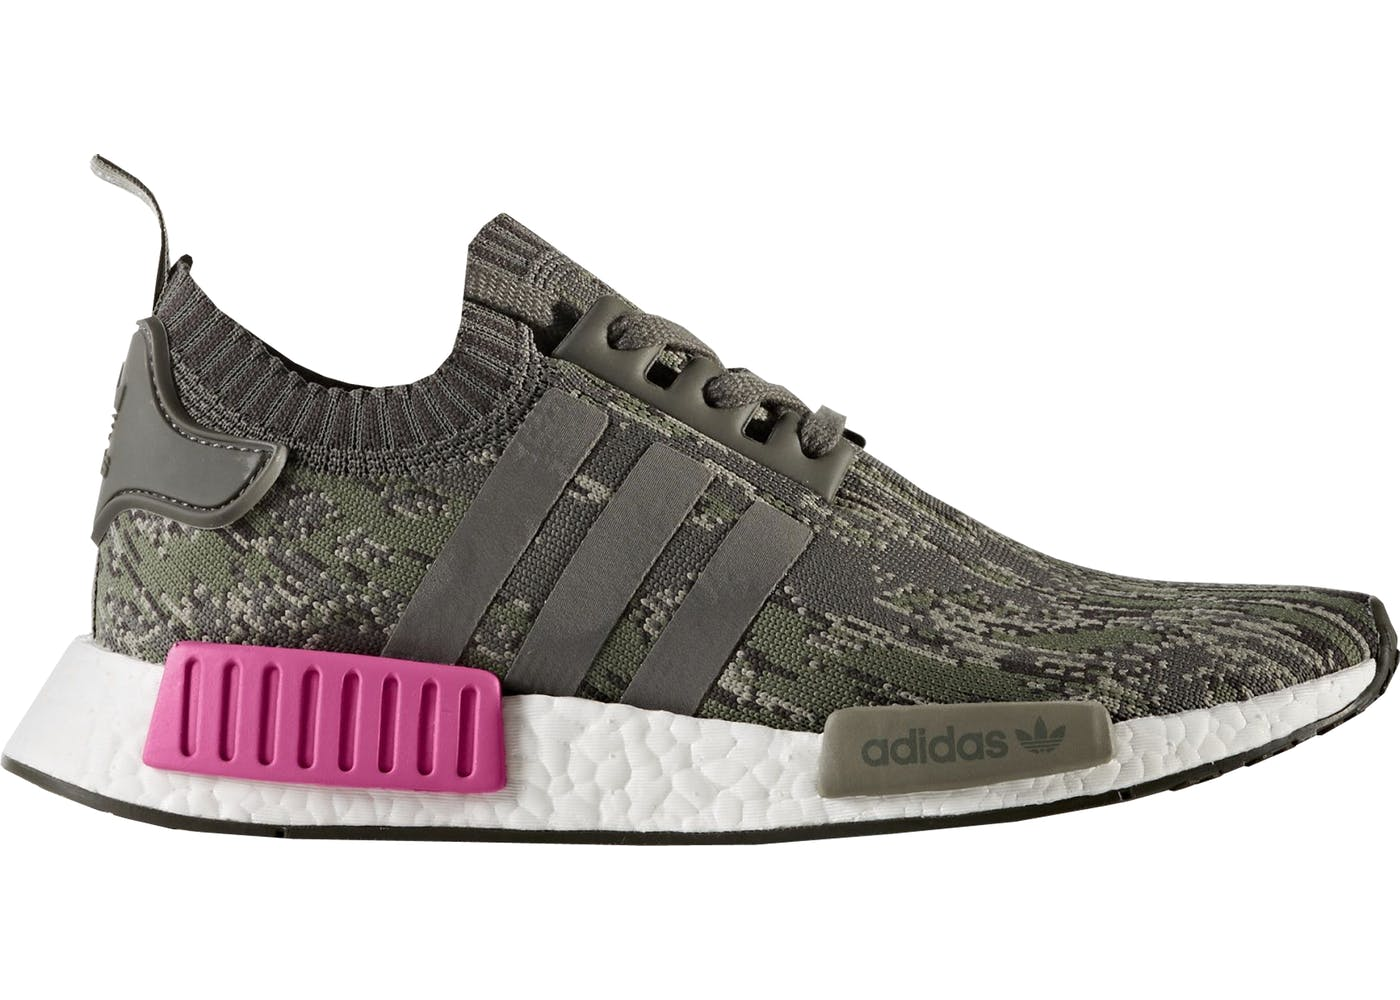 e4f6d9e722586 Amazon: NEW Adidas NMD R1 Champ Exclusive Burgundy